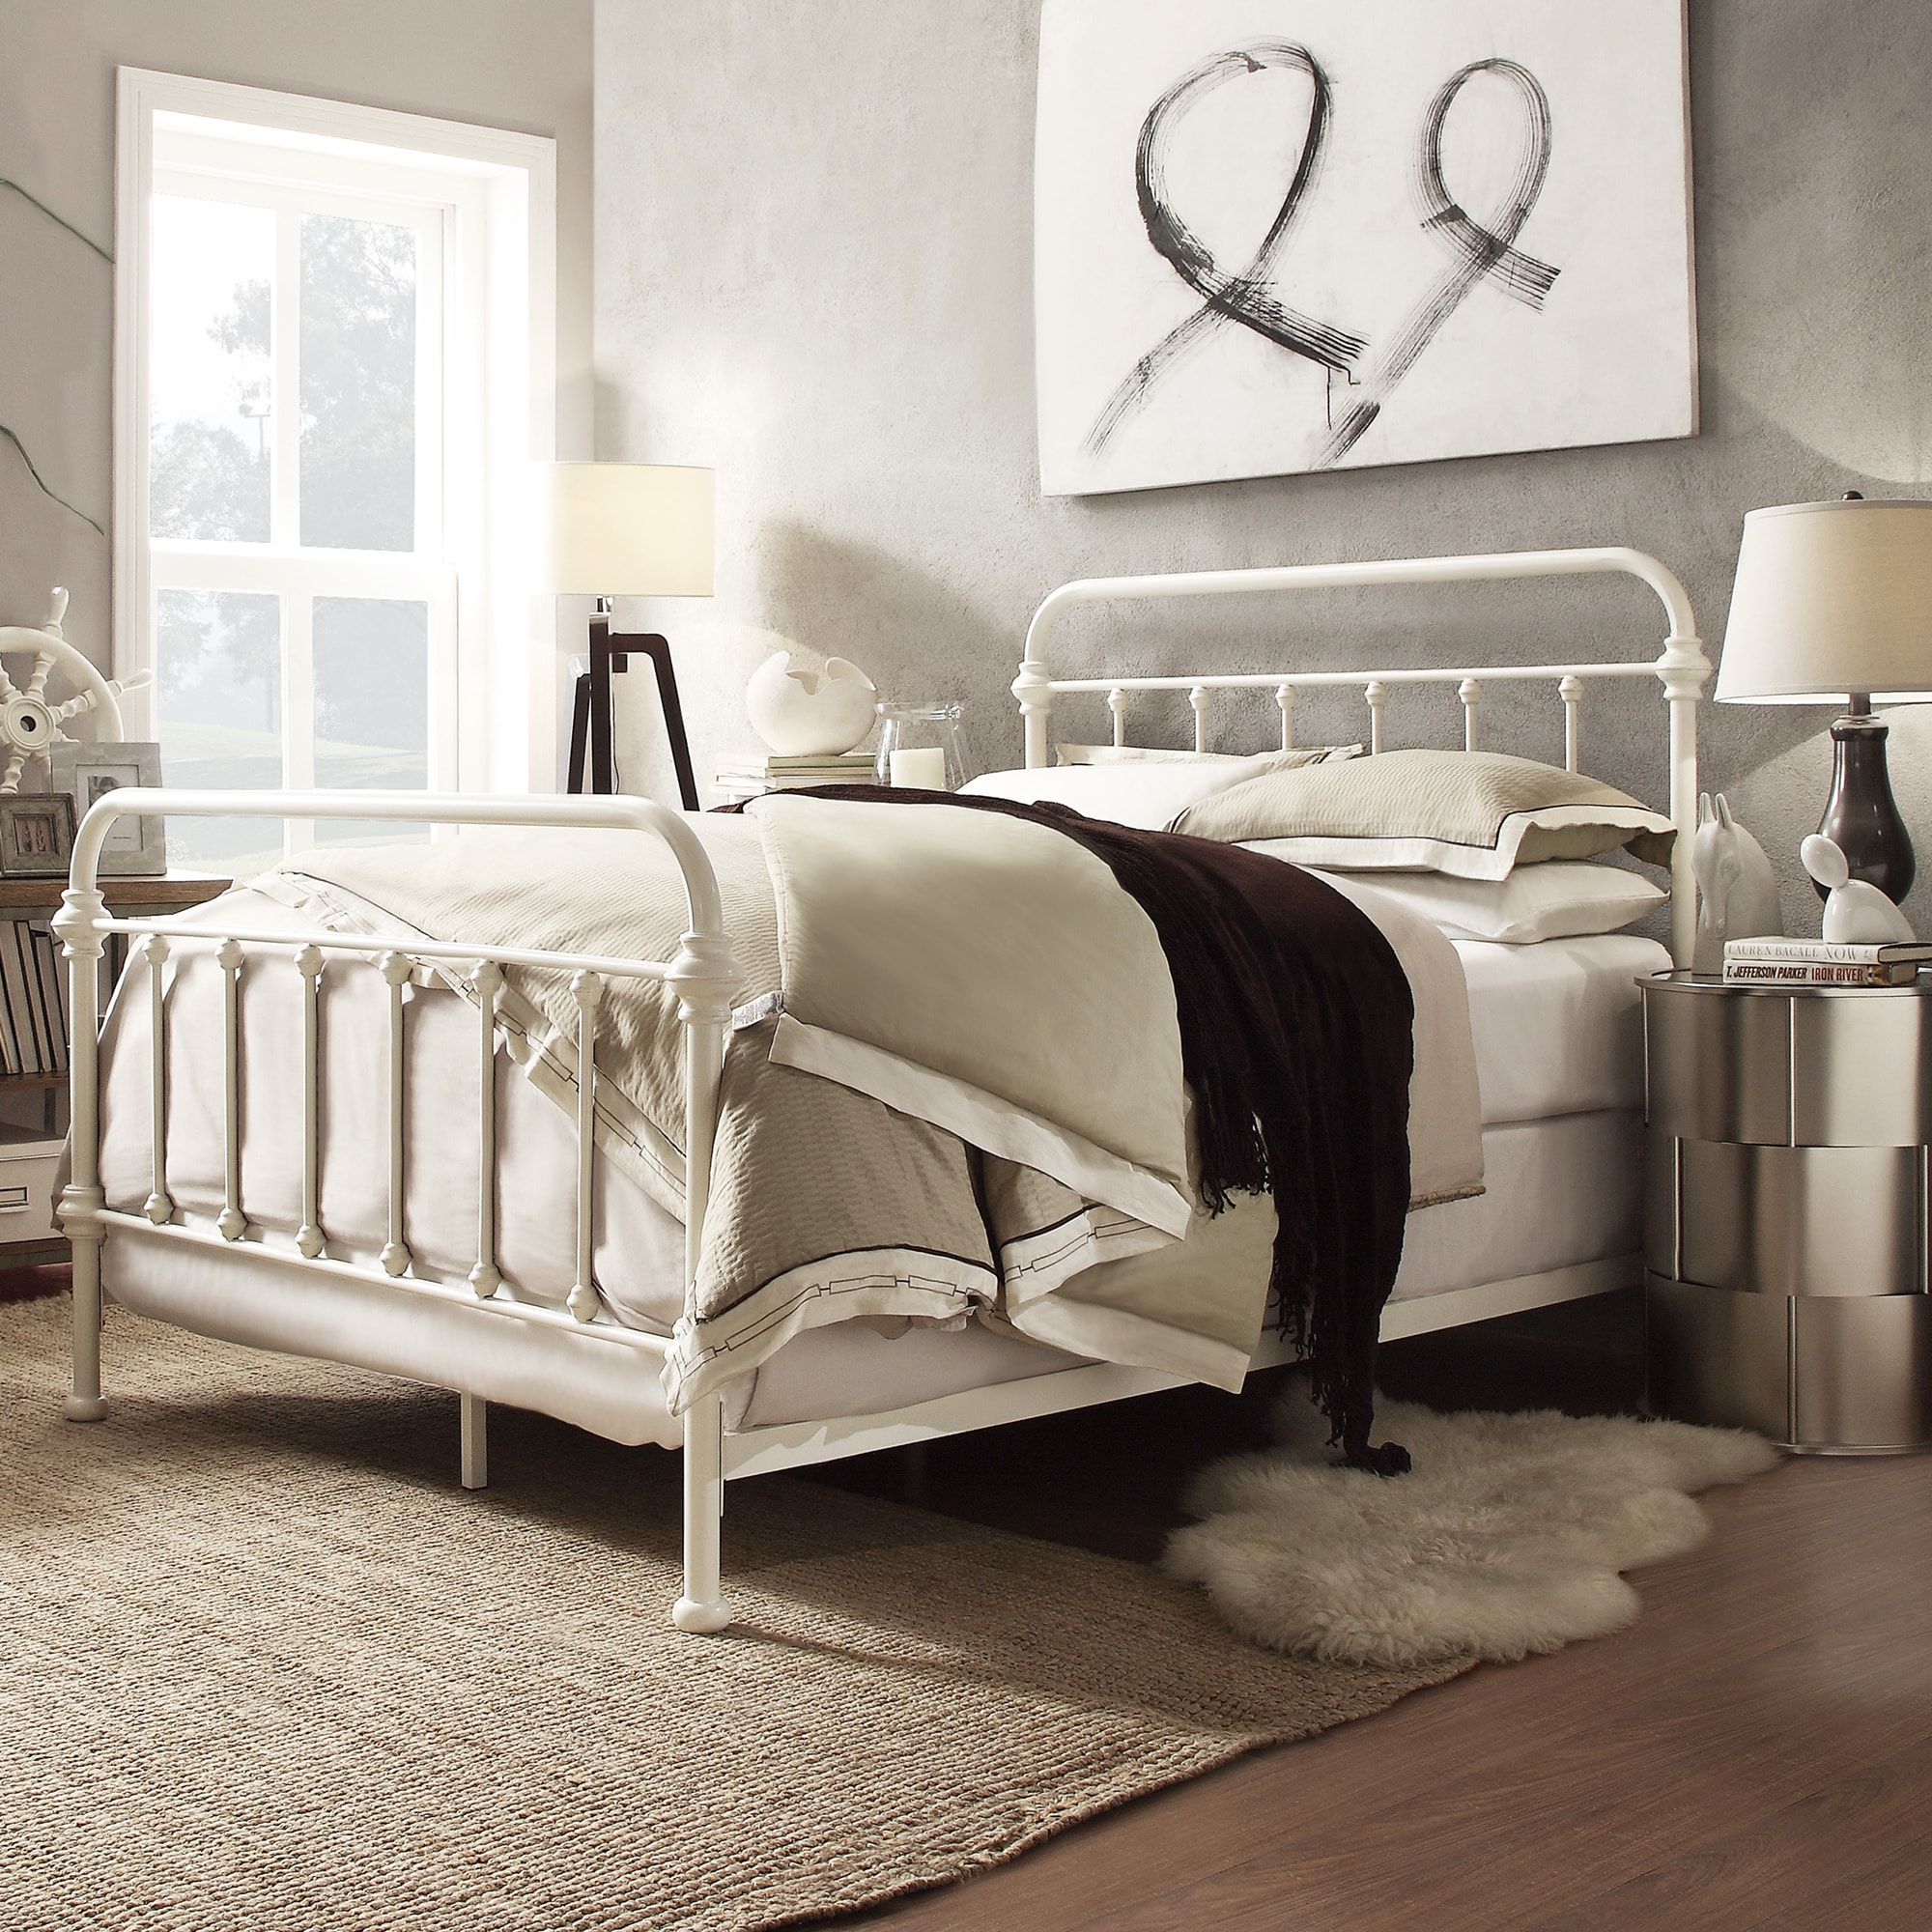 Giselle Antique White Graceful Lines Victorian Iron Metal King-Sized Bed by  iNSPIRE Q Classic - Free Shipping Today - Overstock.com - 16290970